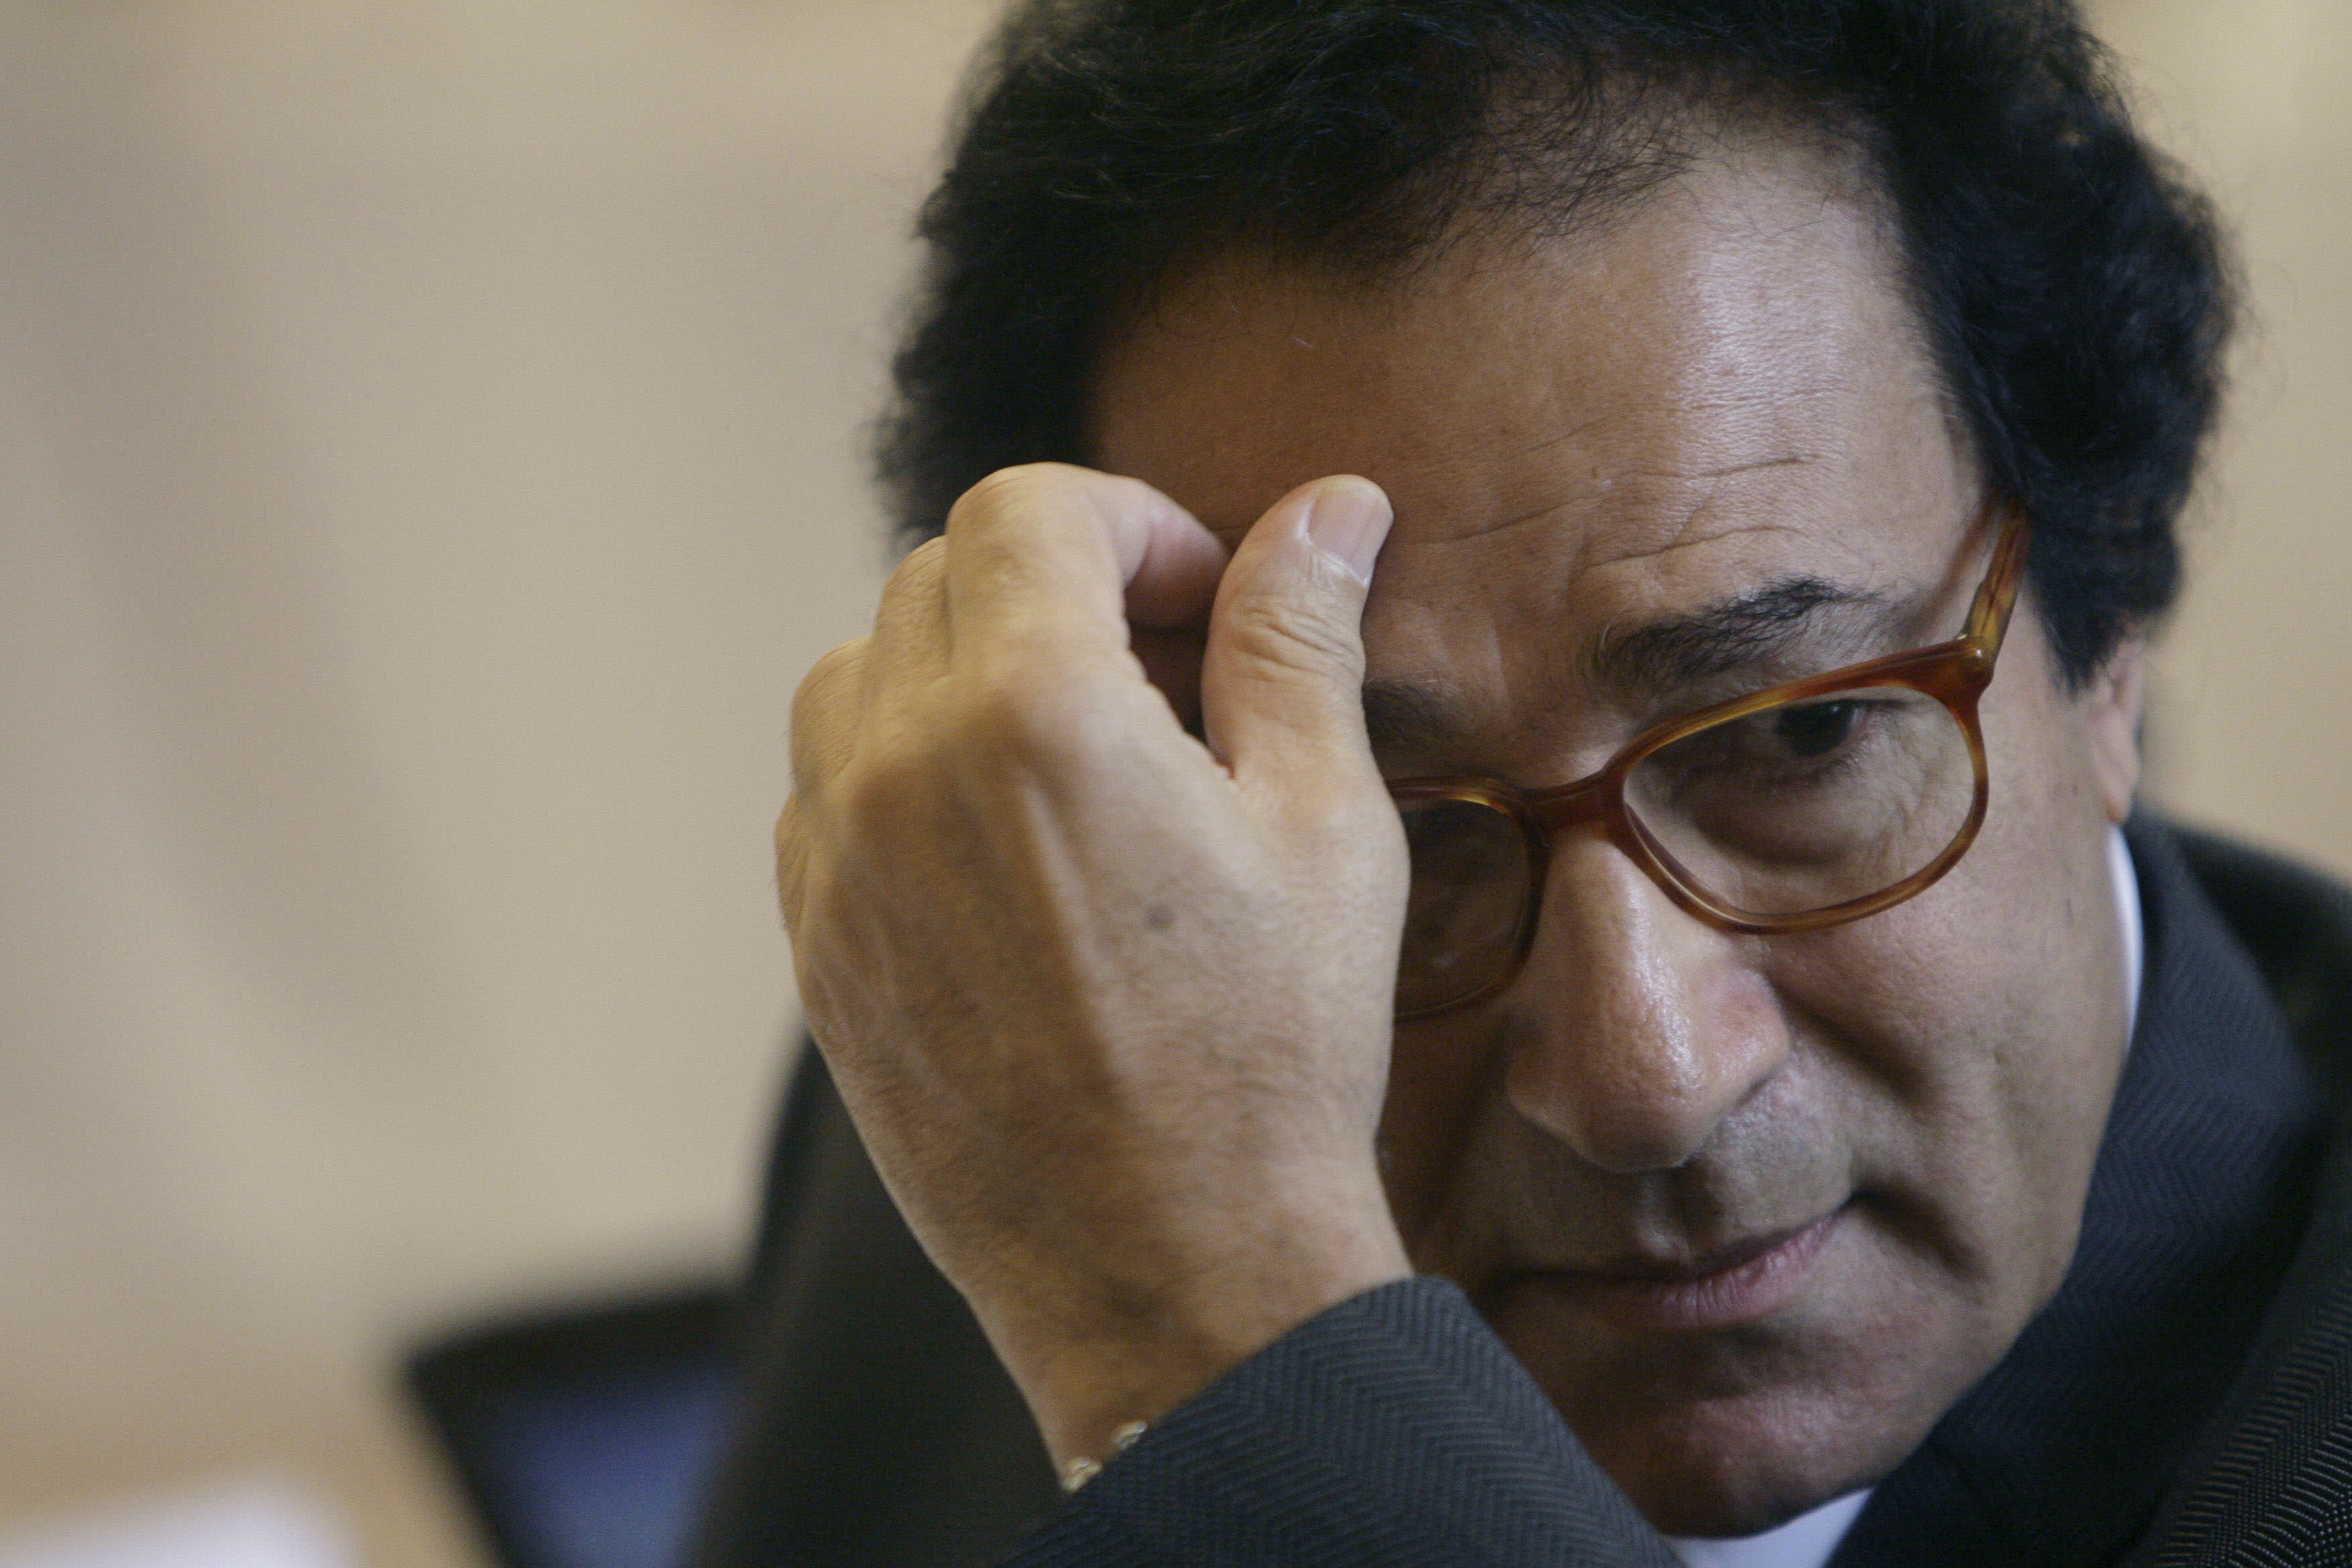 FILE - In this Thursday, May 21, 2009 file photo, then Egypt's Culture Minister Farouq Hosni gestures while attending the South American and Arab countries' meeting of Culture Ministers in Rio de Janeiro. Hosni, who served as culture minister for most of former President Mubarak's 29 year-rule has been charged with corruption and referred to trial according to Egypt's official news agency. says Hosni allegedly failed to account for 18 million Egyptian pounds of his wealth during a Justice Ministry investigation (AP Photo/Ricardo Moraes, File)